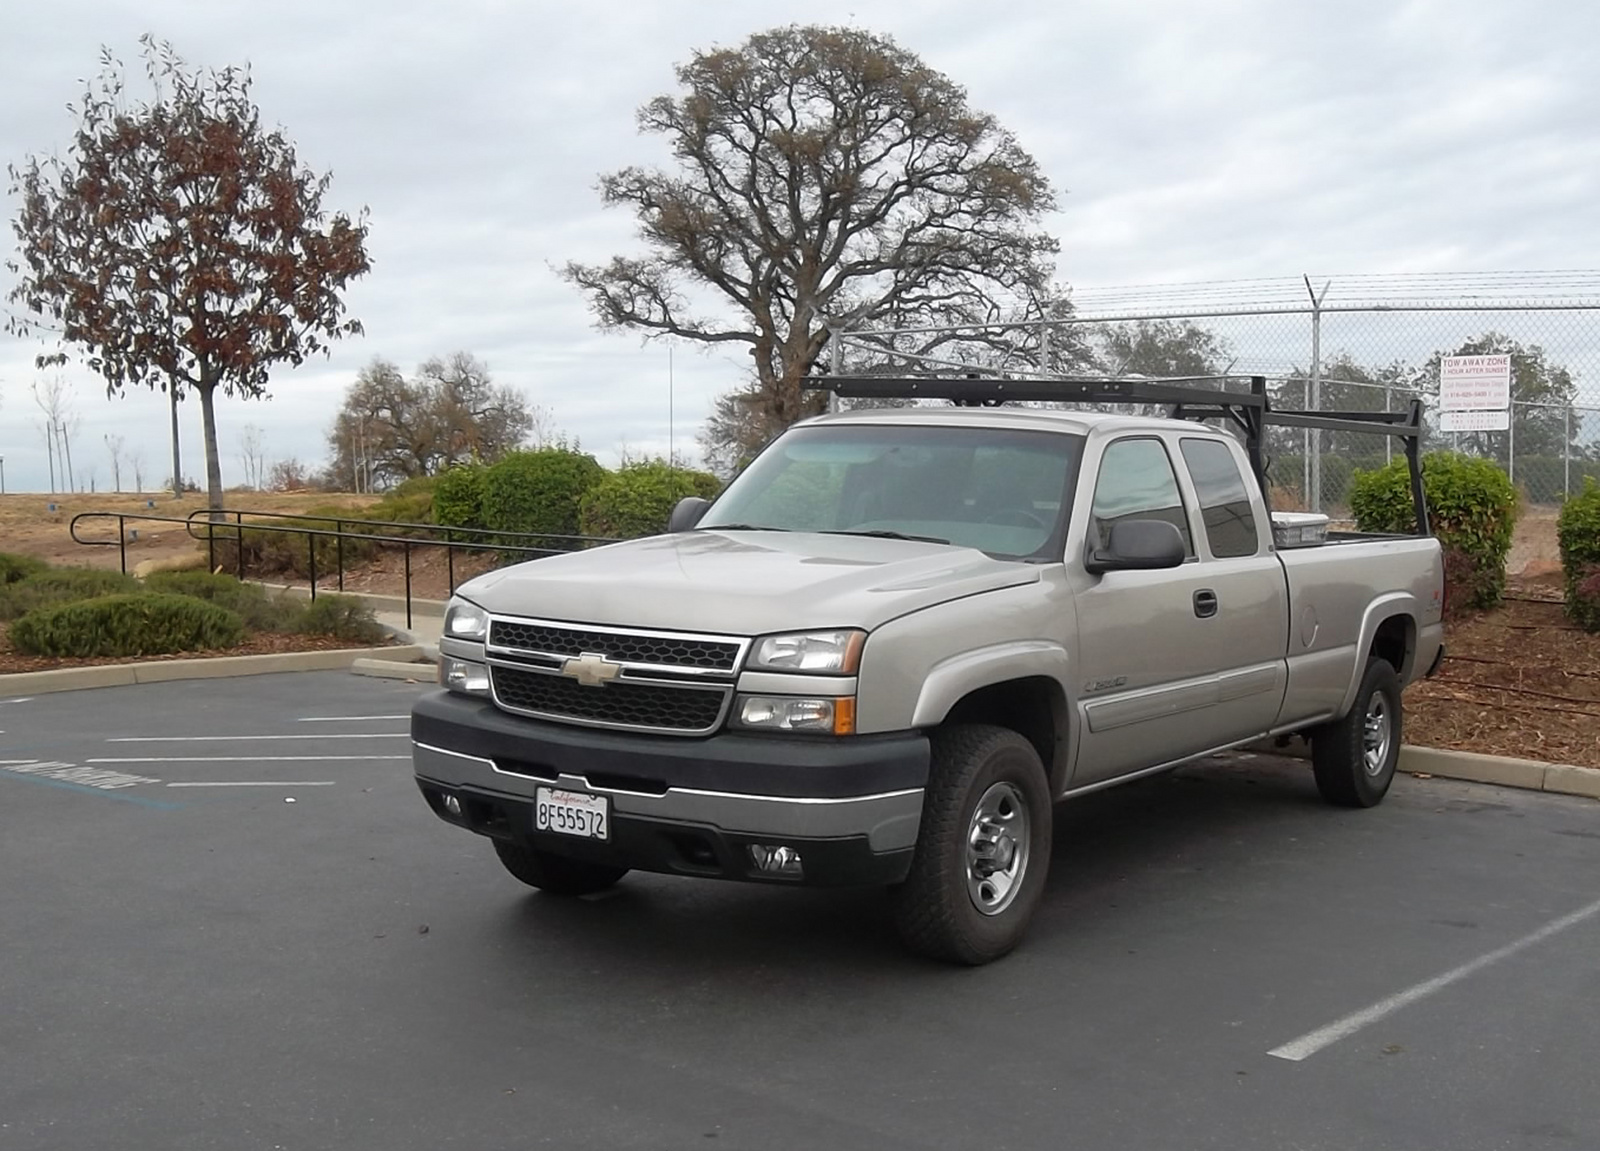 2007 chevrolet silverado classic 2500hd specifications. Black Bedroom Furniture Sets. Home Design Ideas